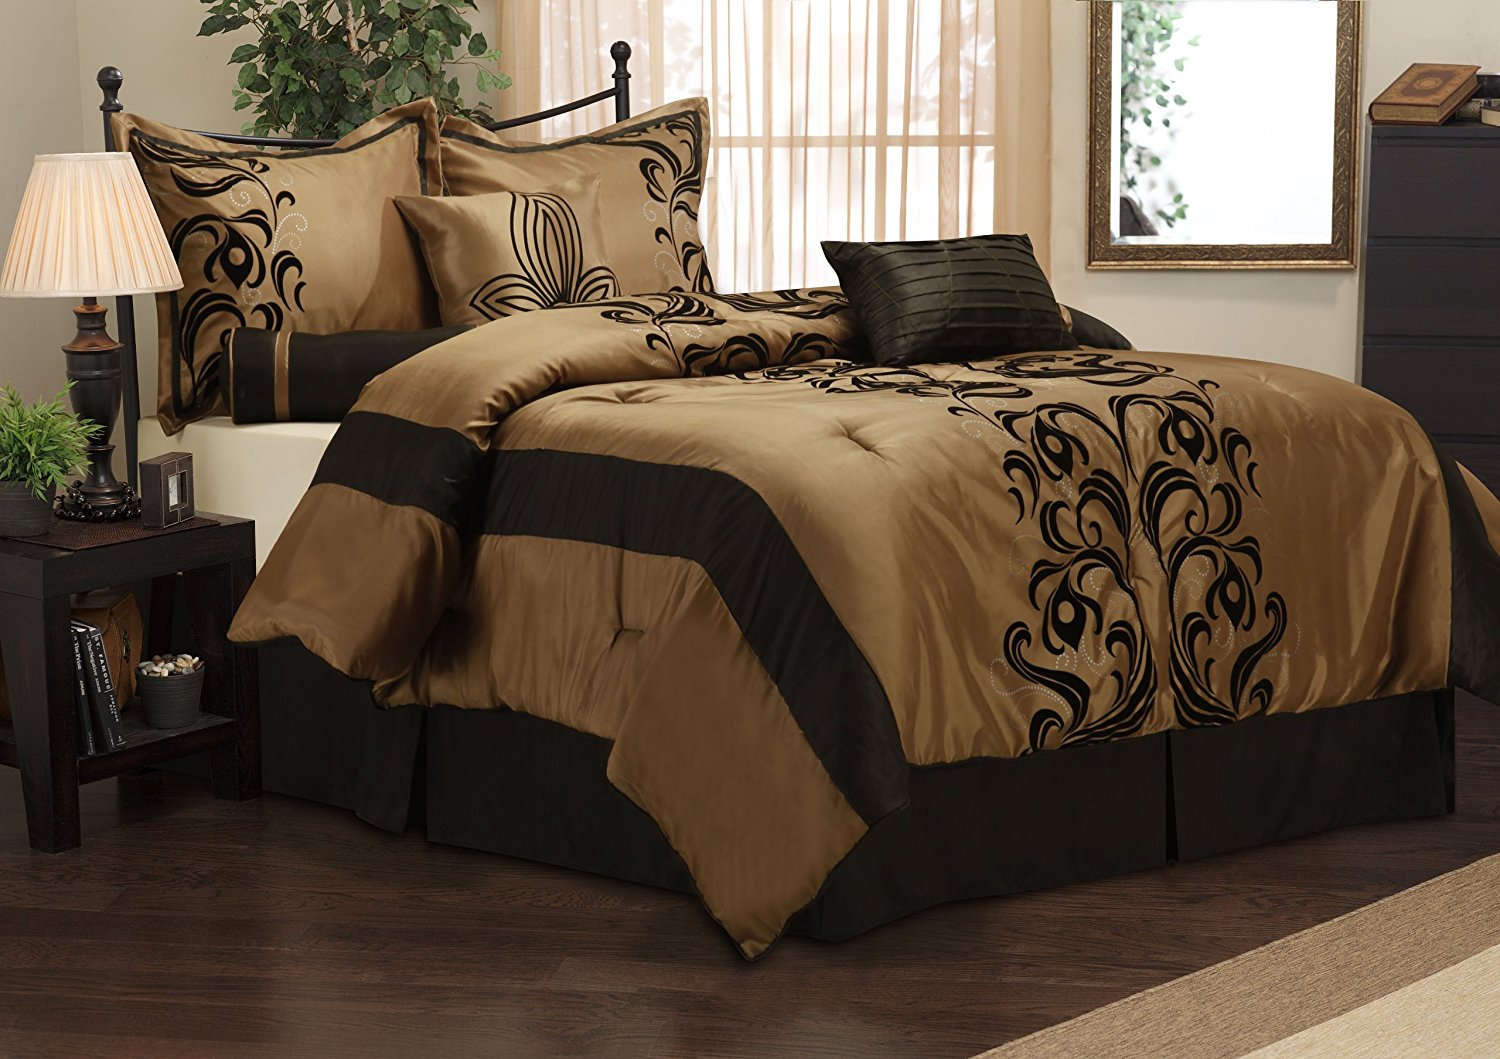 Cheap Bedding Sets Bedroom Using Luxury Comforter Sets For Wonderful Bedroom